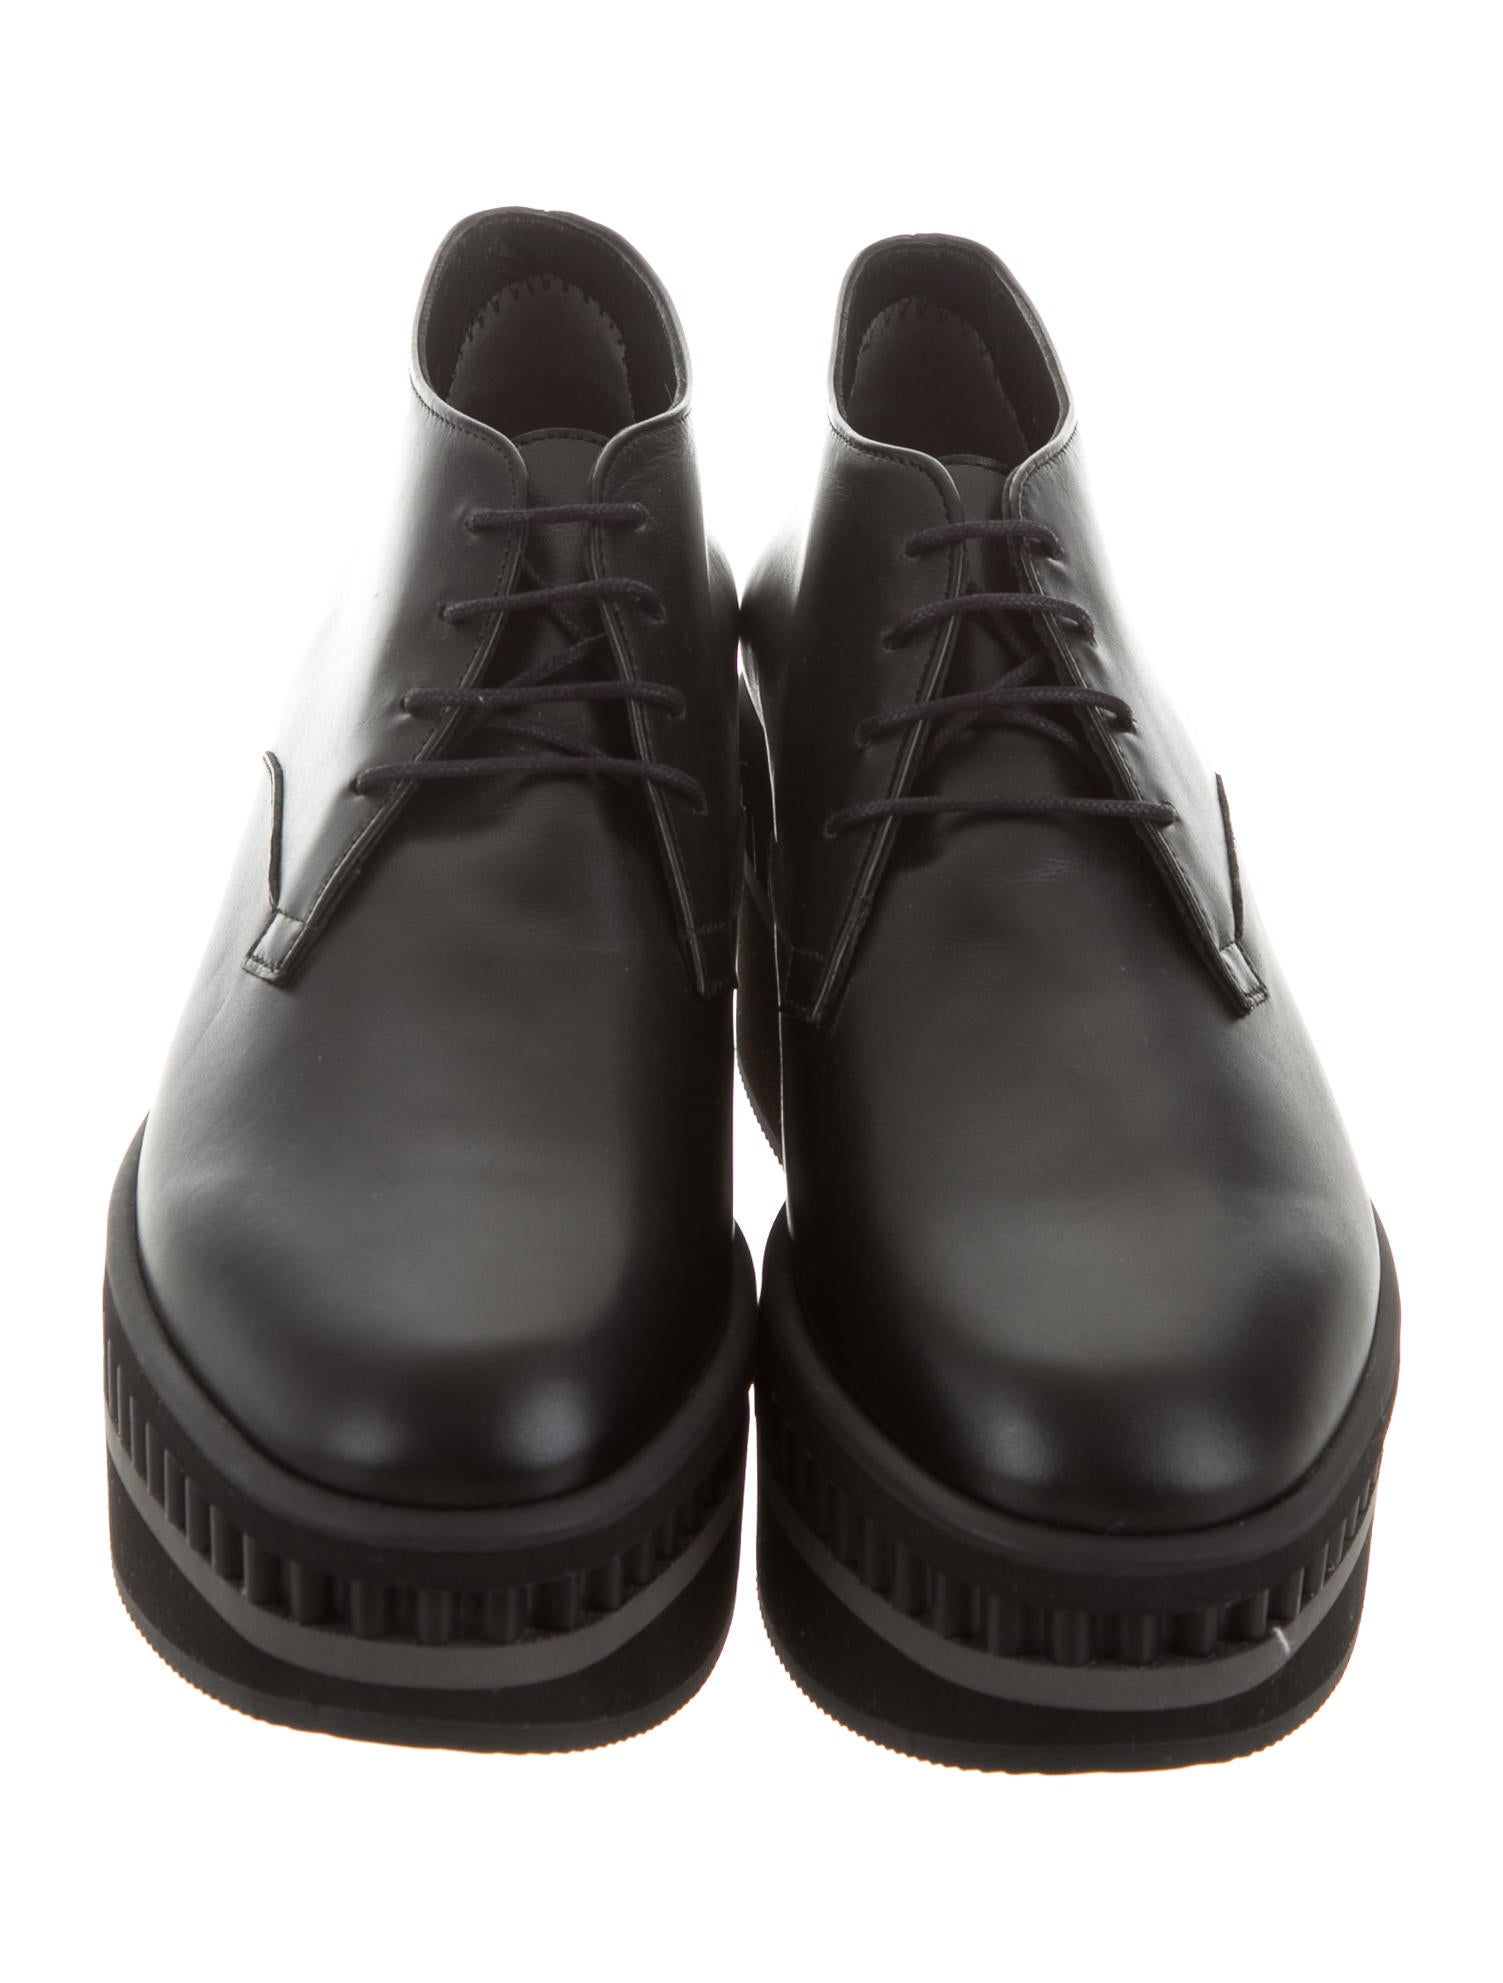 Robert Clergerie Limmy Wedge Boots w/ Tags sale for cheap XRKGIL59Rc